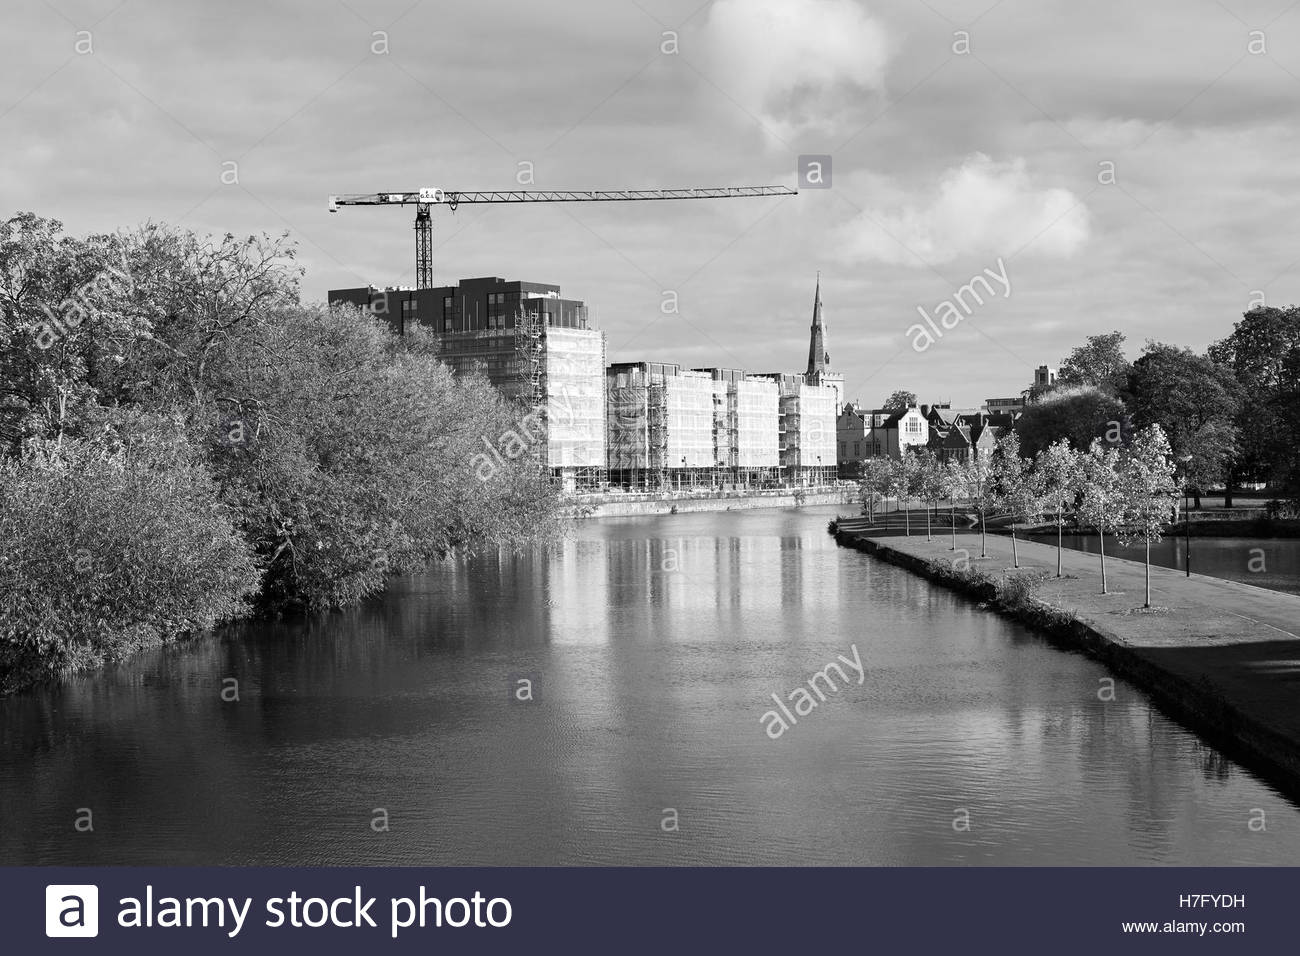 Riverside redevelopment construction works nearing completion along The Embankment, Bedford, England, UK. - Stock Image